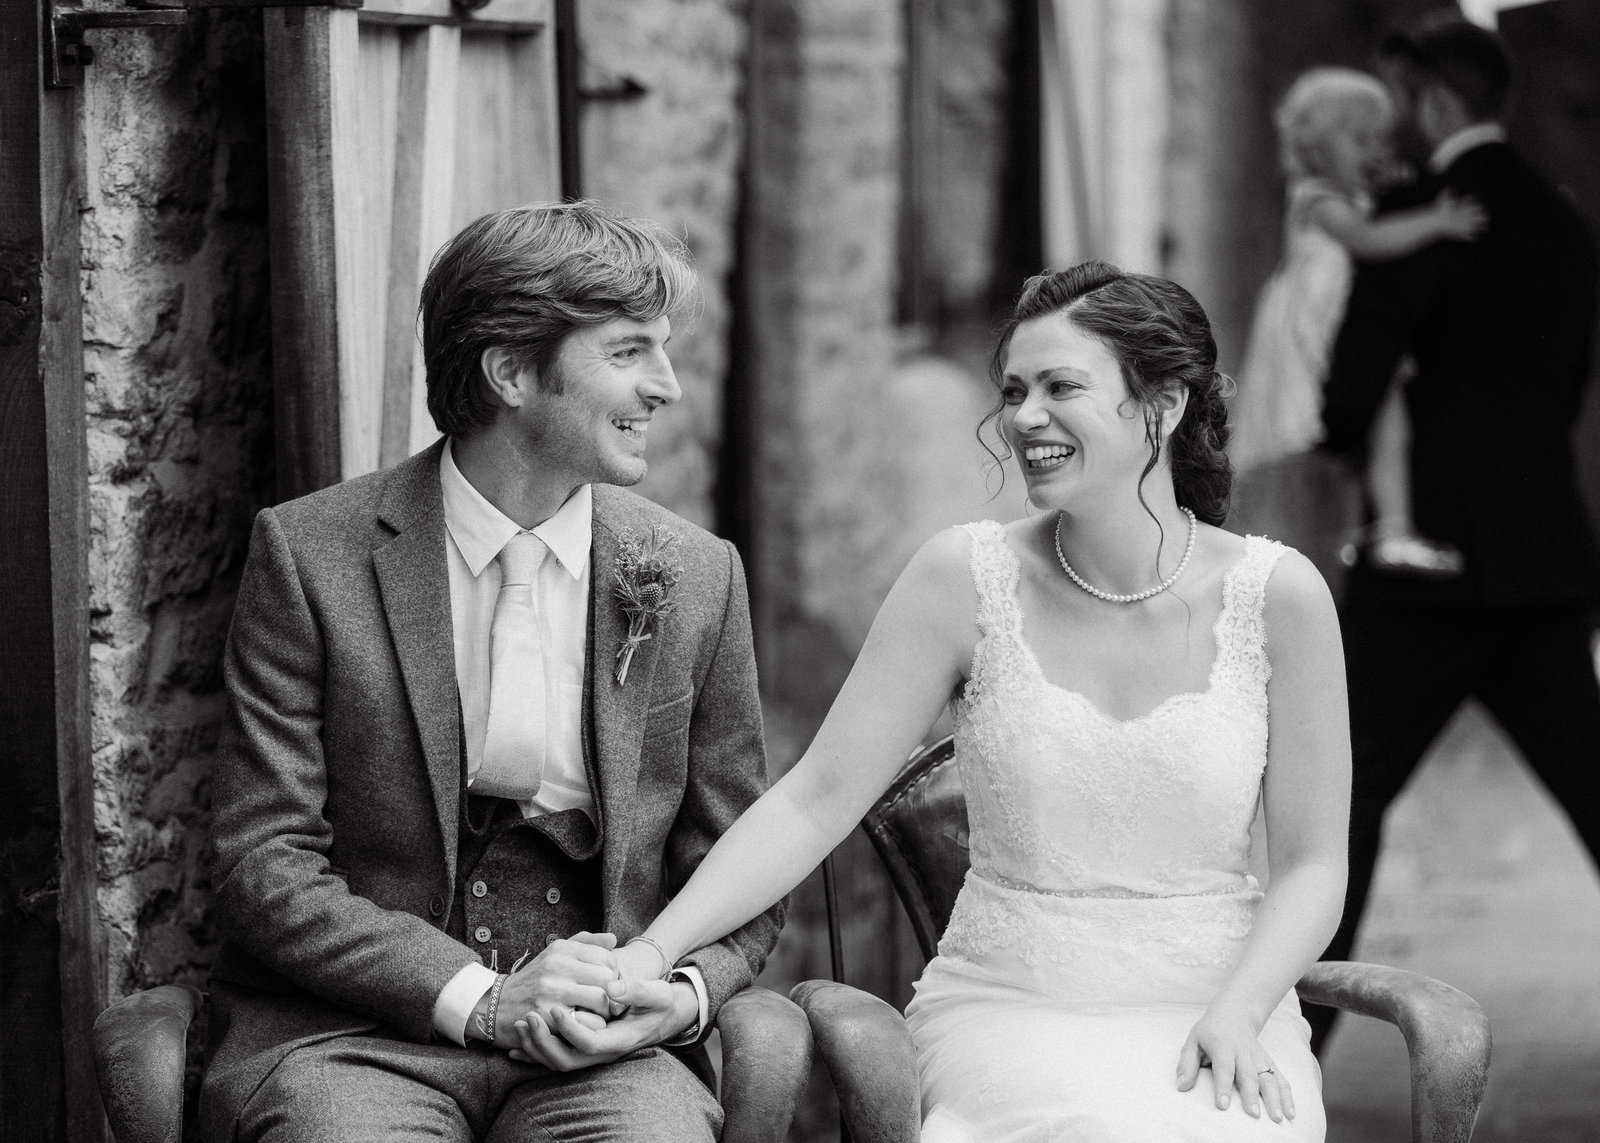 Beautiful photo of bride and groom during wedding ceremony as they lovingly look and smile at each other during a reading in their outdoor ceremony at the Tithe Barn in Launton, near Bicester